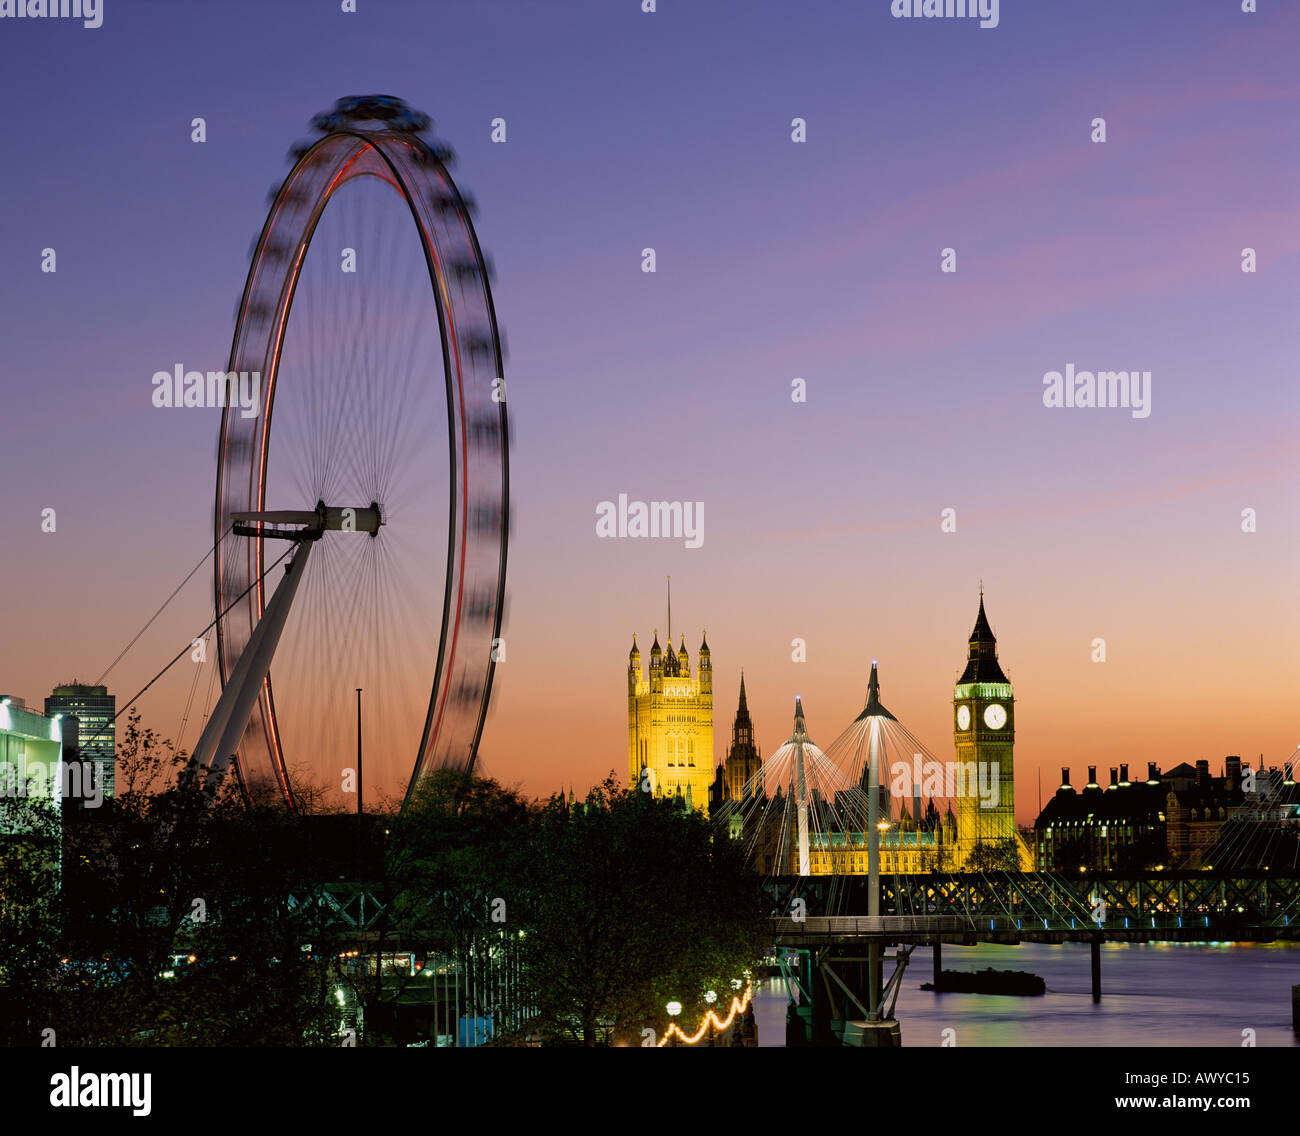 UK LONDON LONDON EYE AND RIVER THAMES AT DUSK Stock Photo